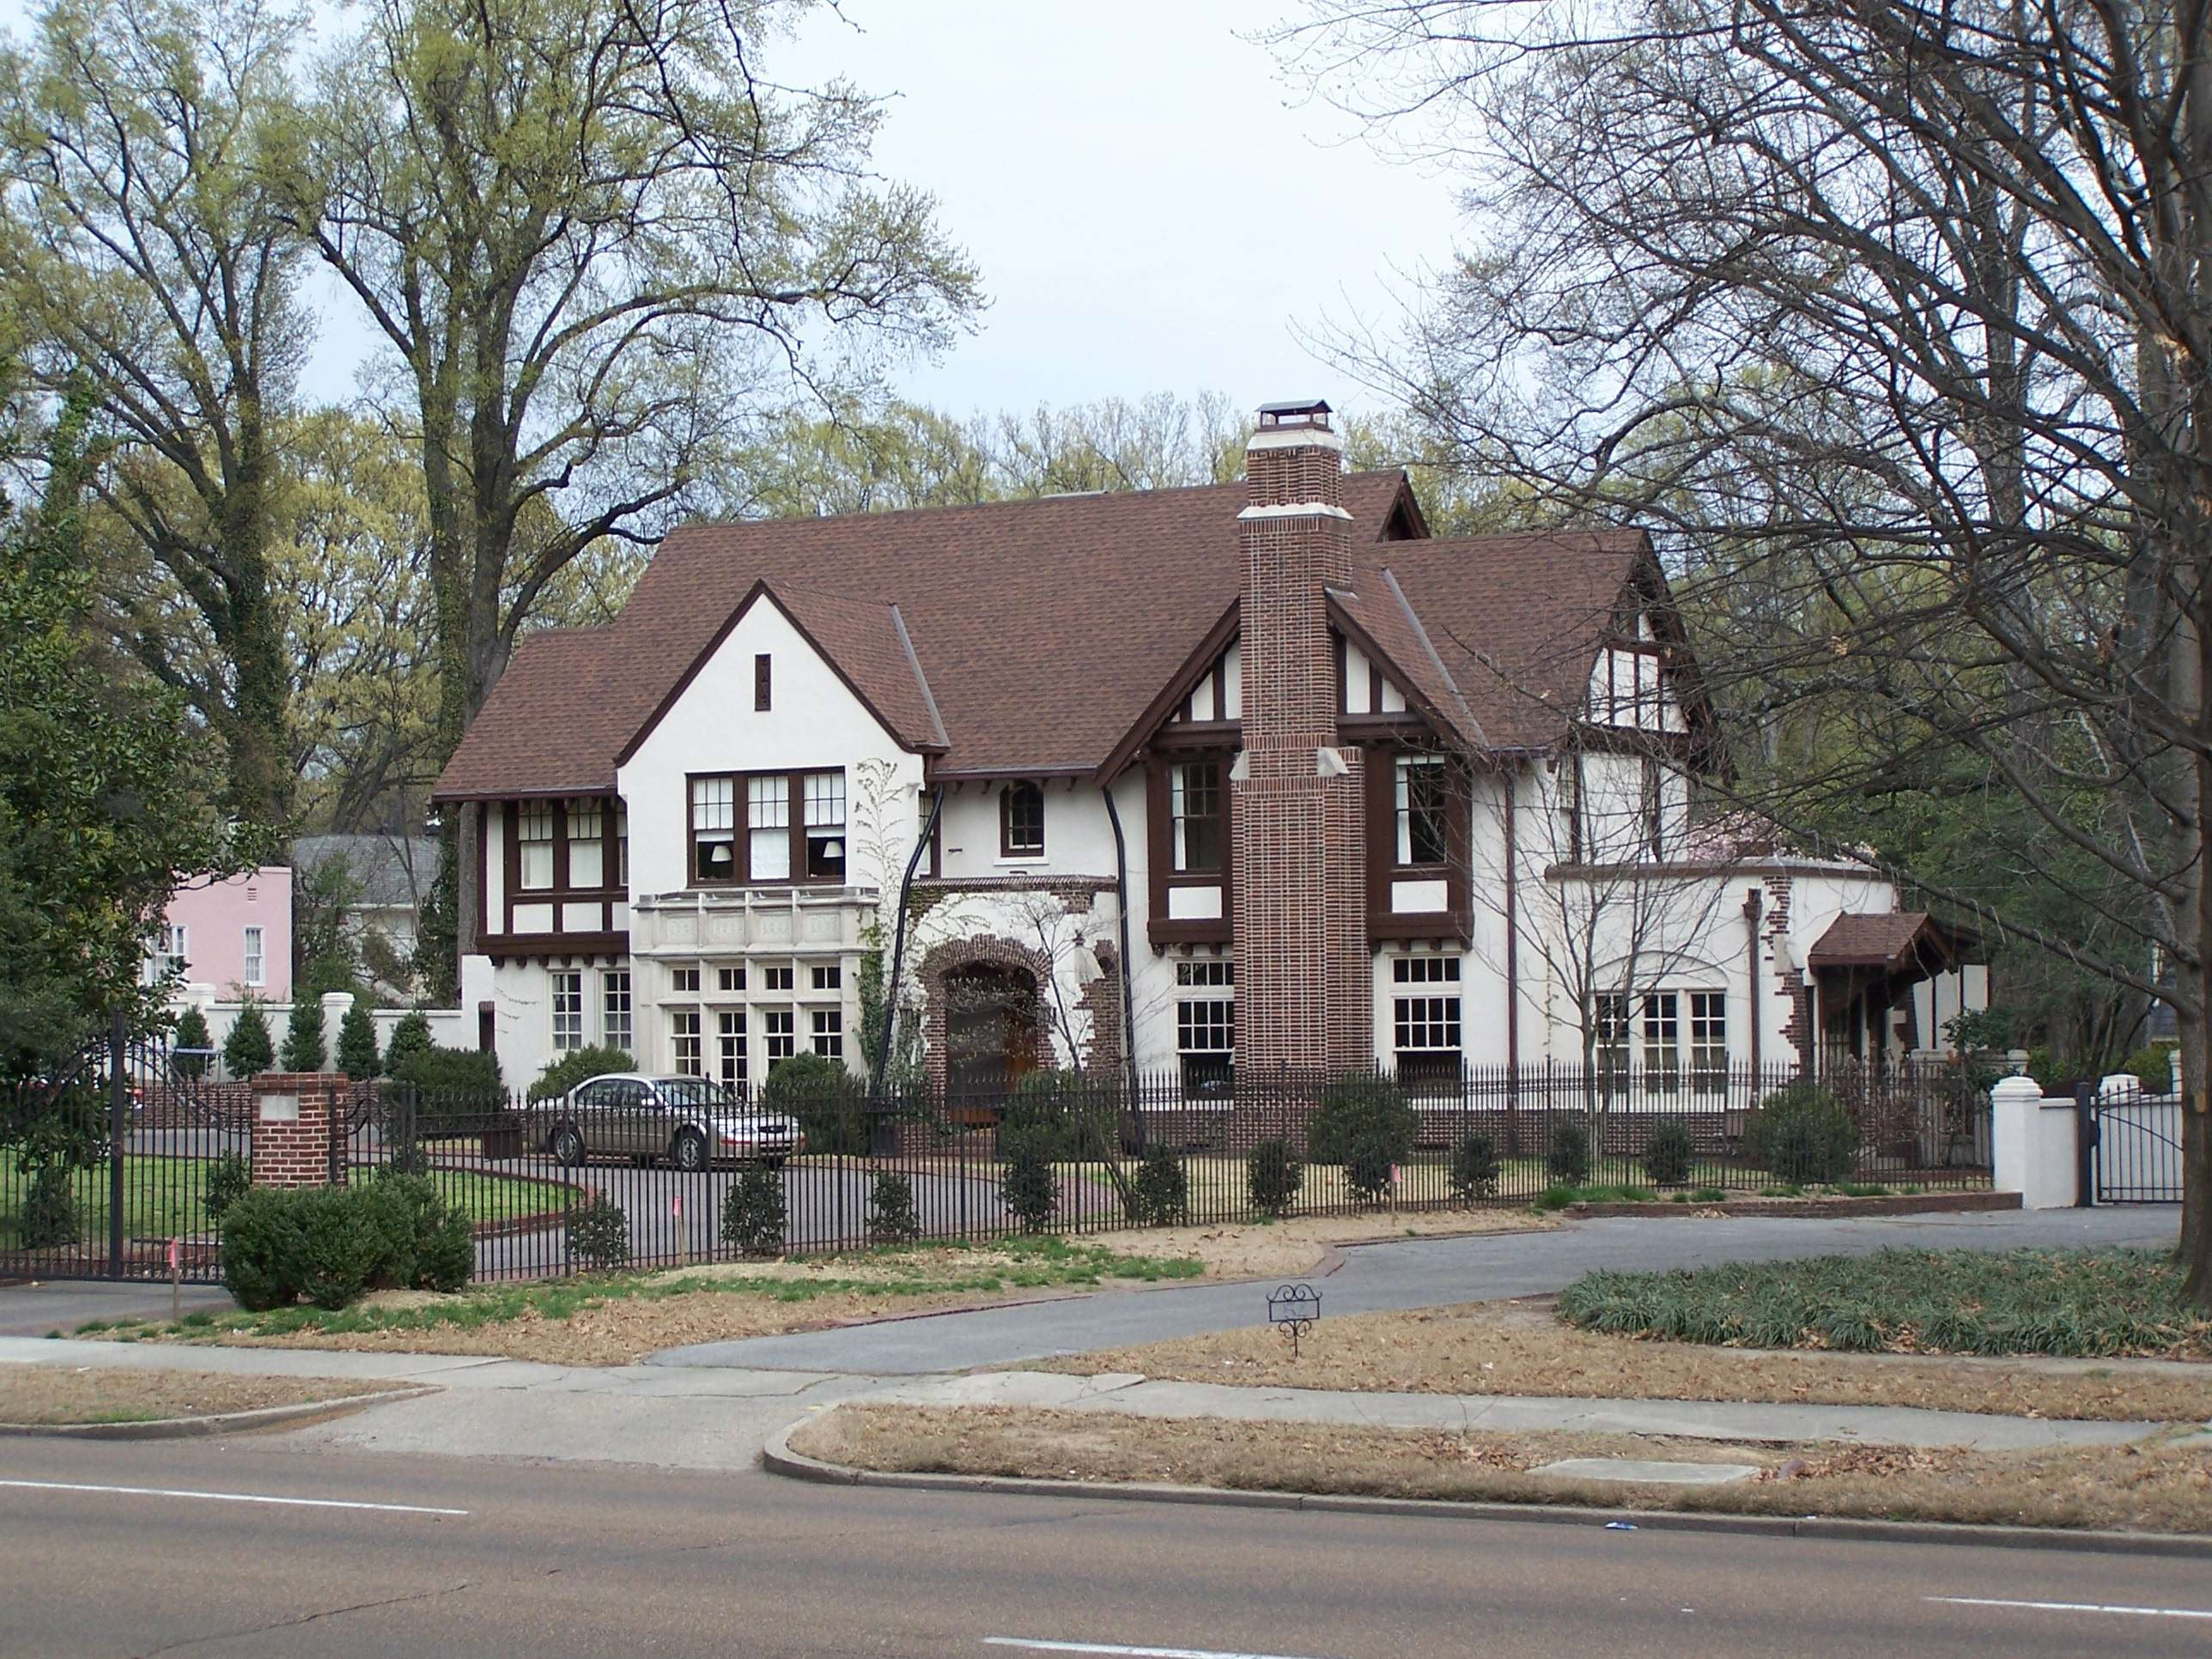 As most of the homes were constructed in the 1910s and 20s these were typical styles for the period